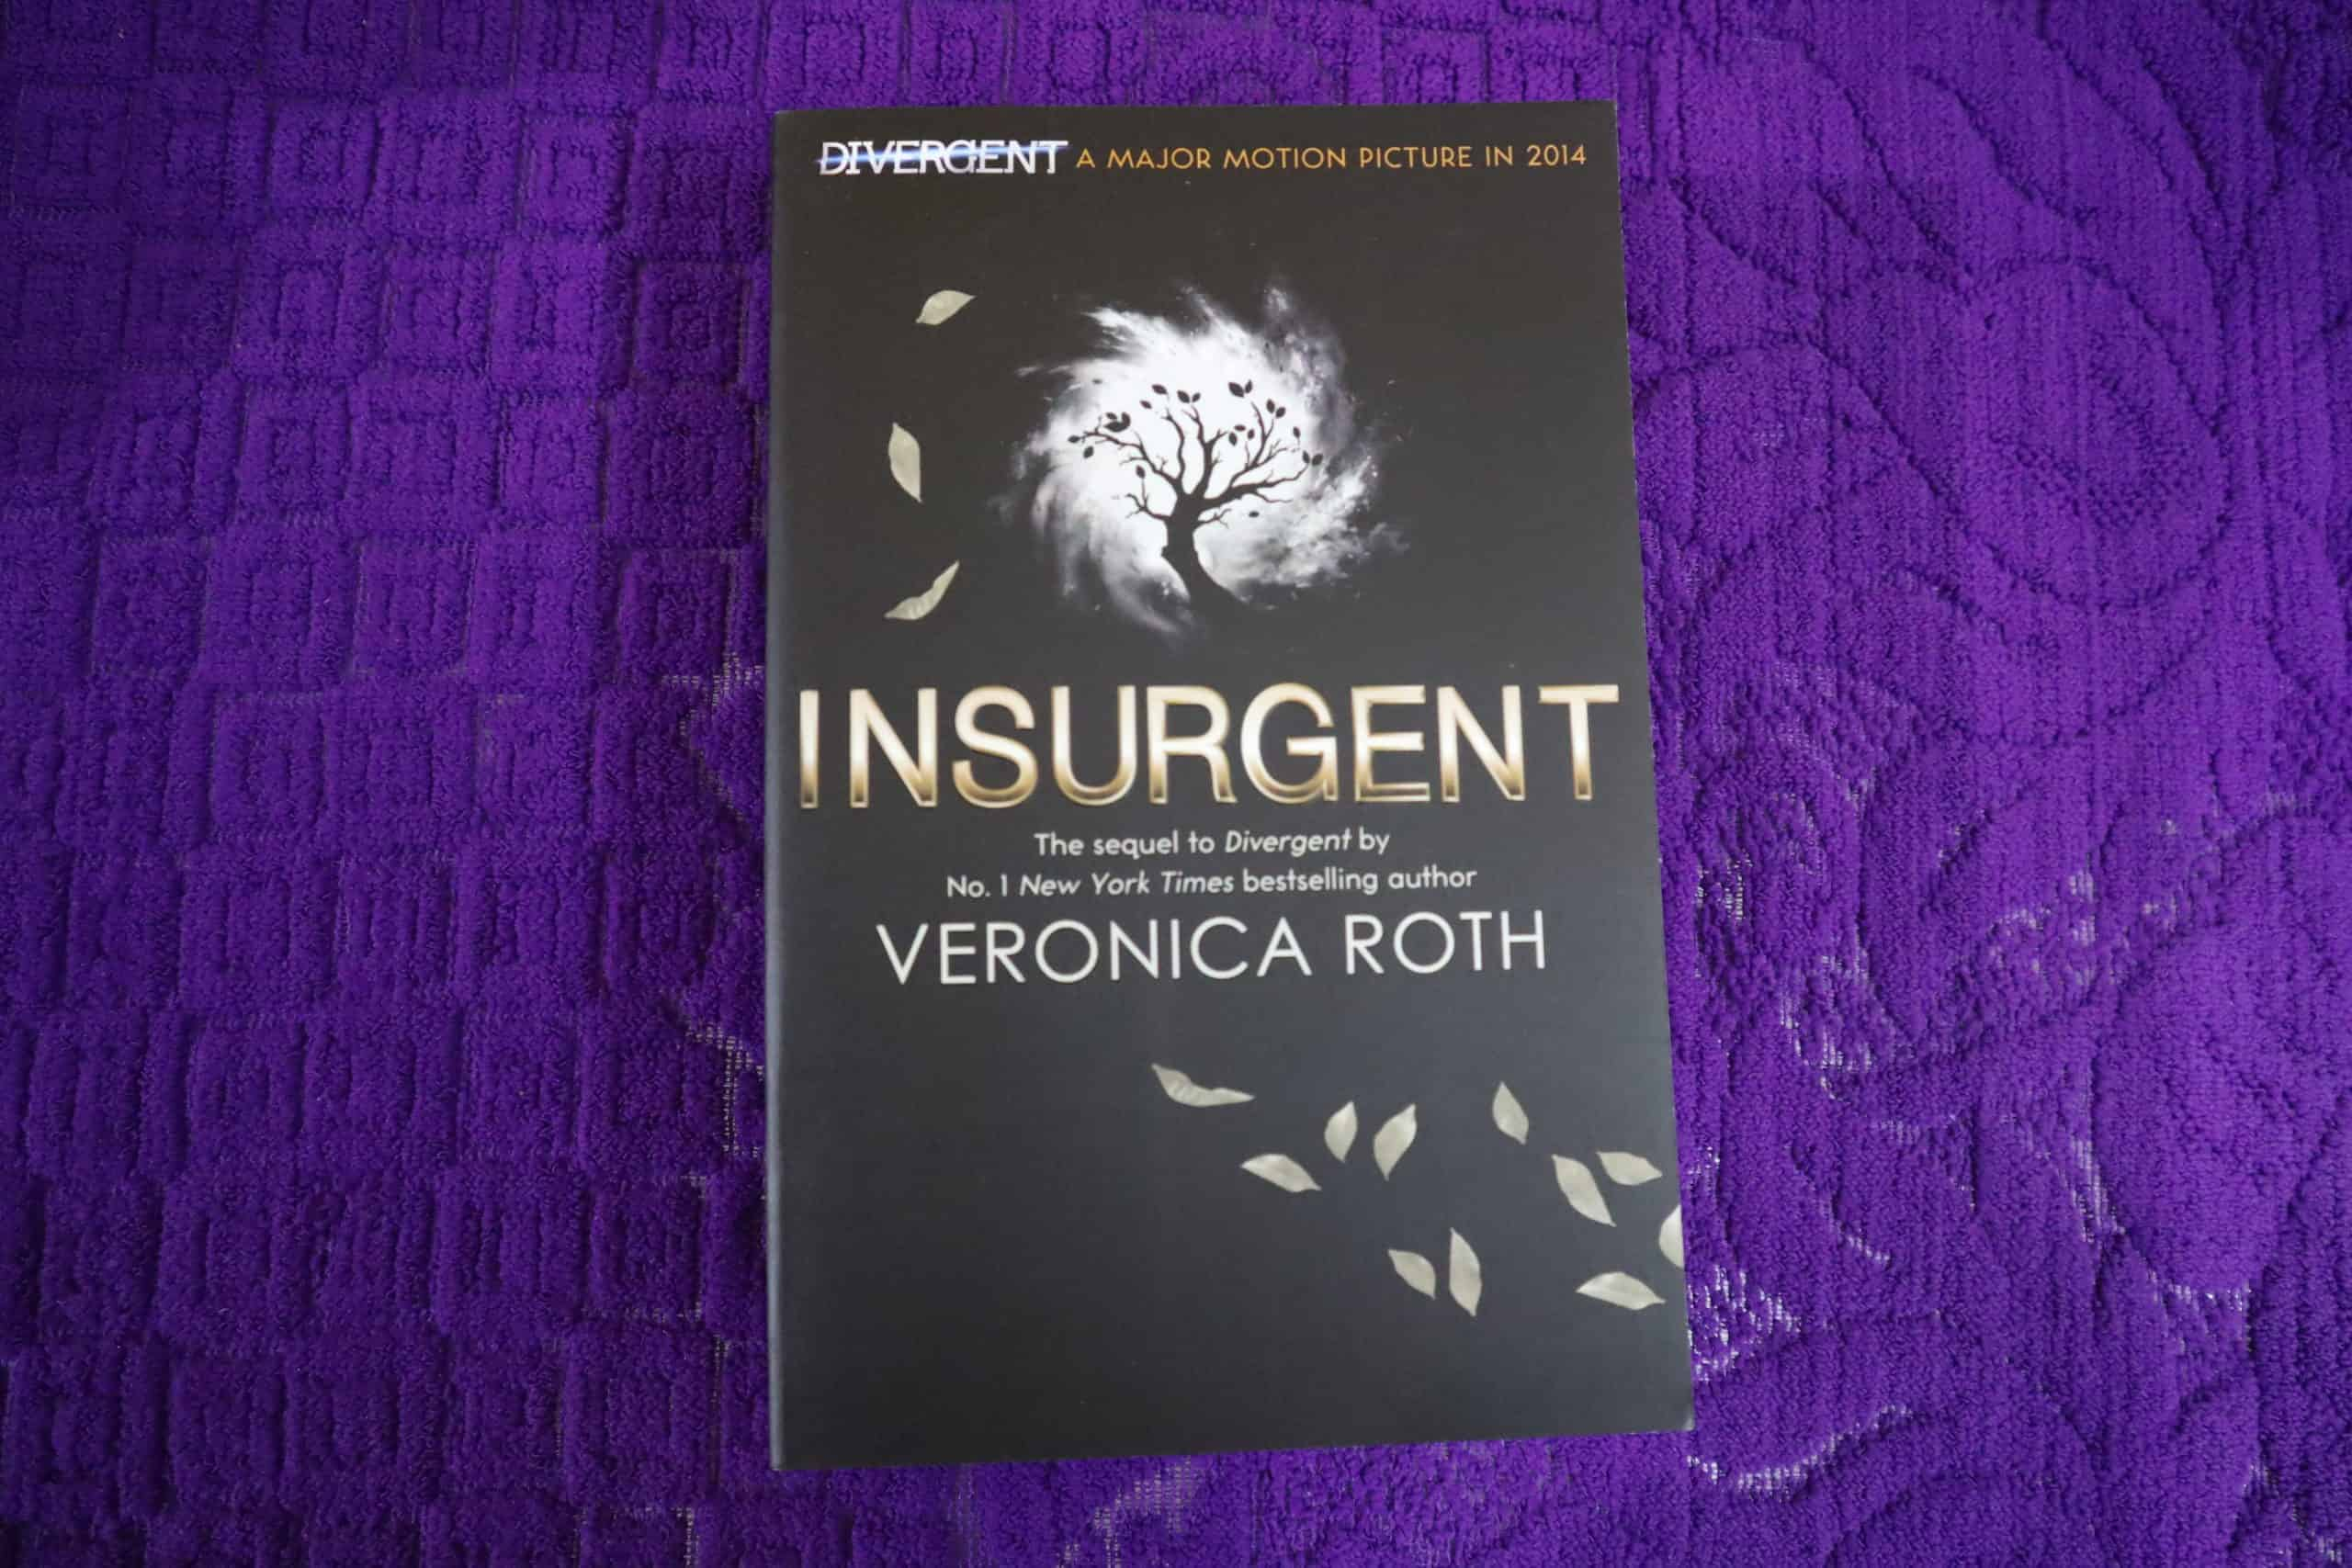 Insurgent By Veronica Roth Author Book Novel Review Rating